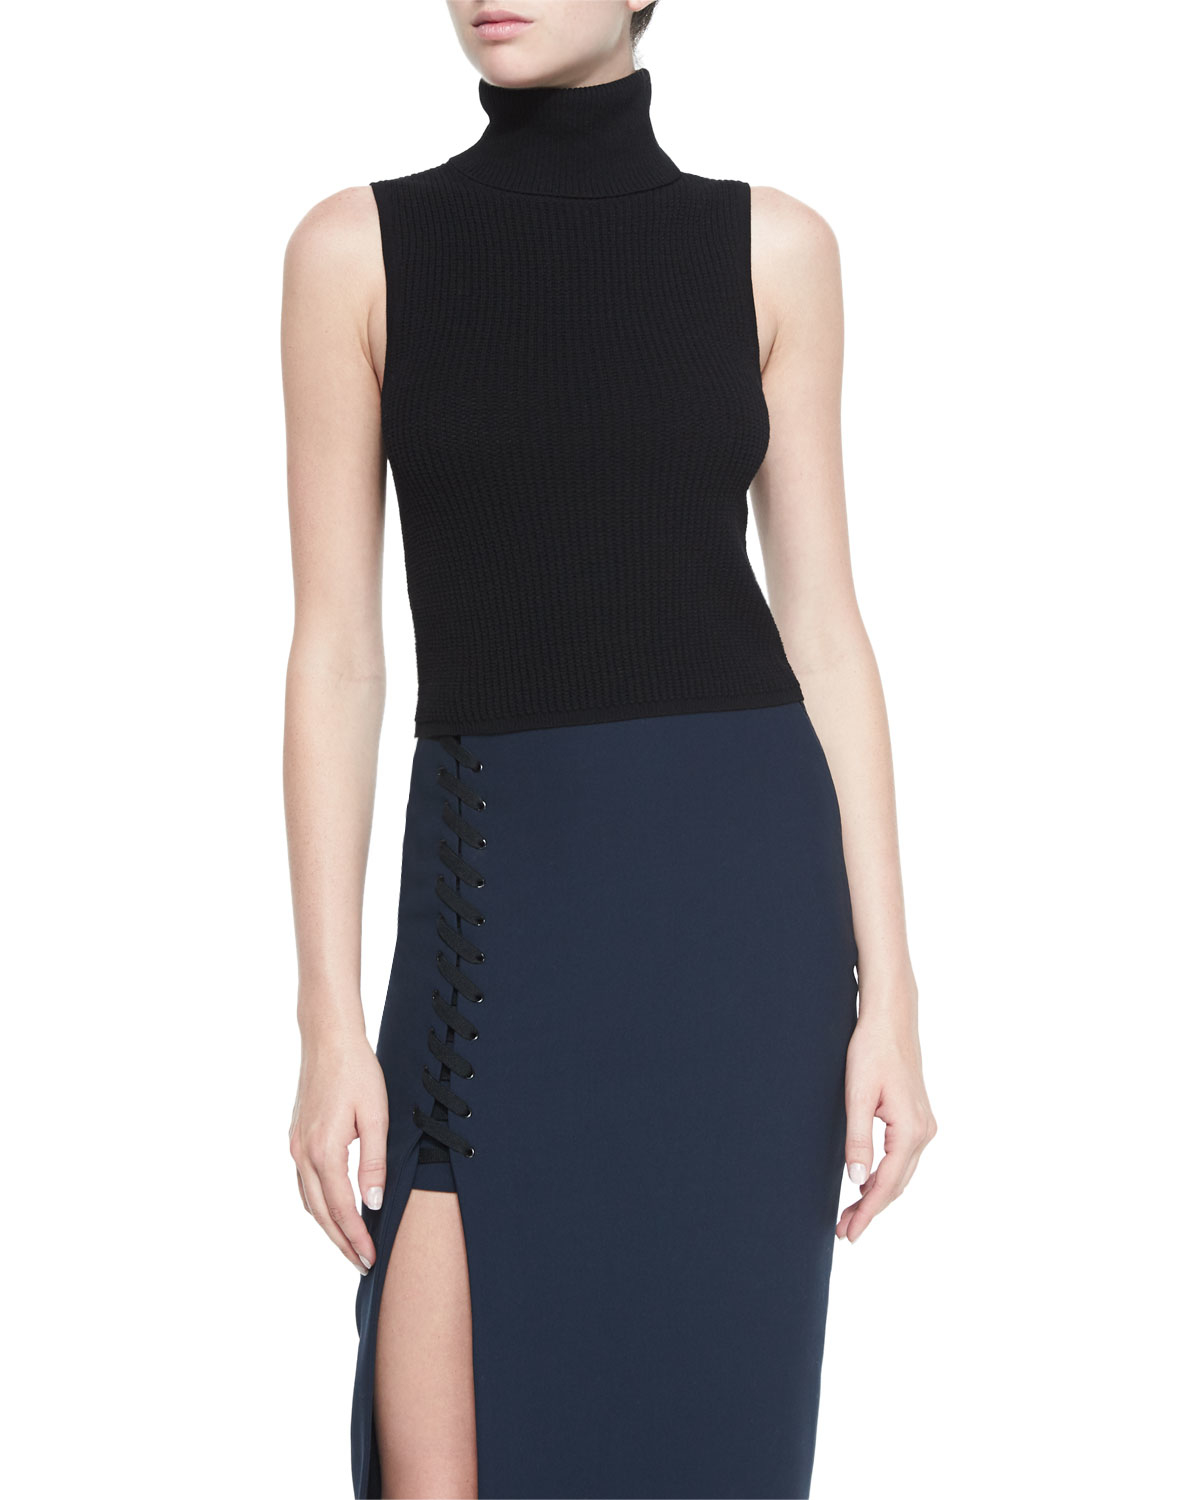 Find great deals on eBay for black turtleneck sleeveless. Shop with confidence.